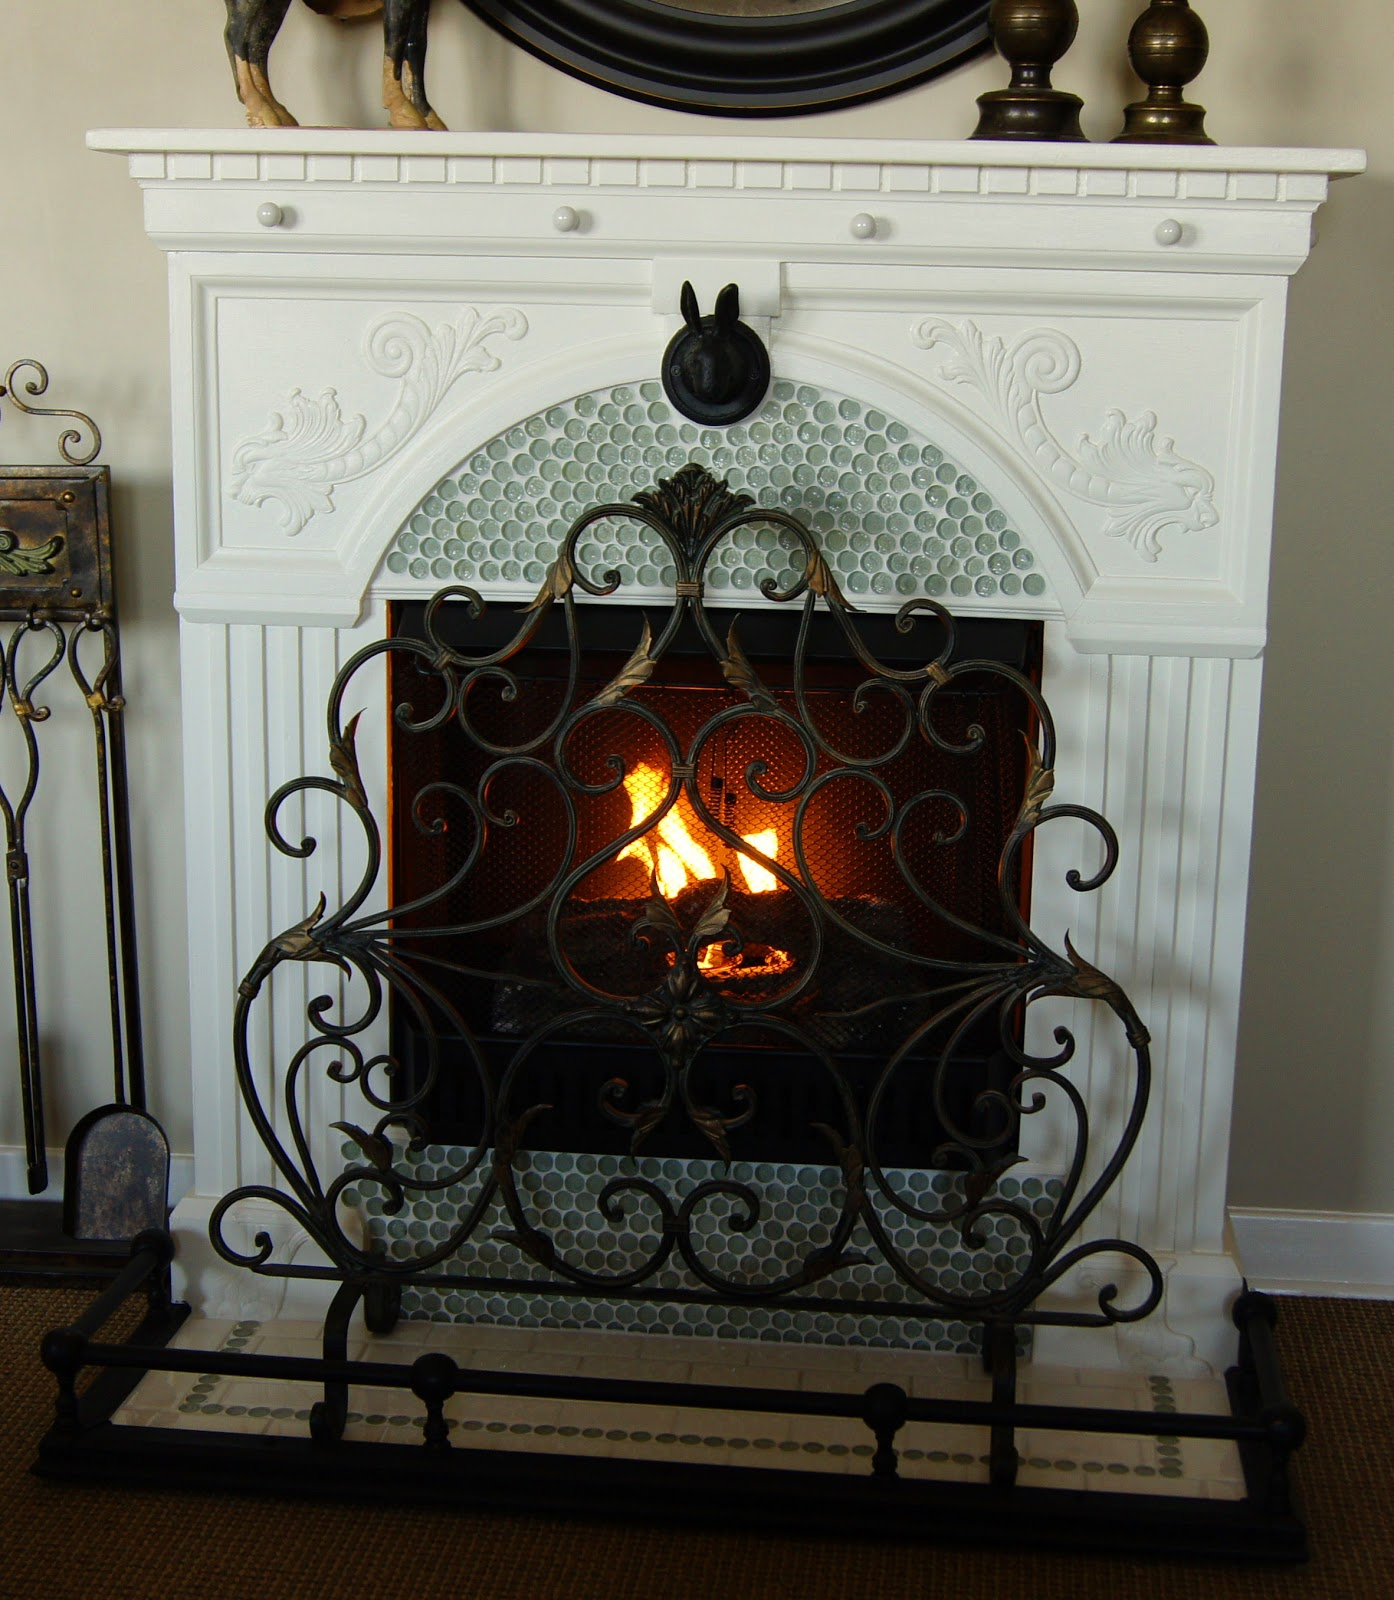 French Country Fireplace A French Country Fireplace So You Think You Re Crafty Entry